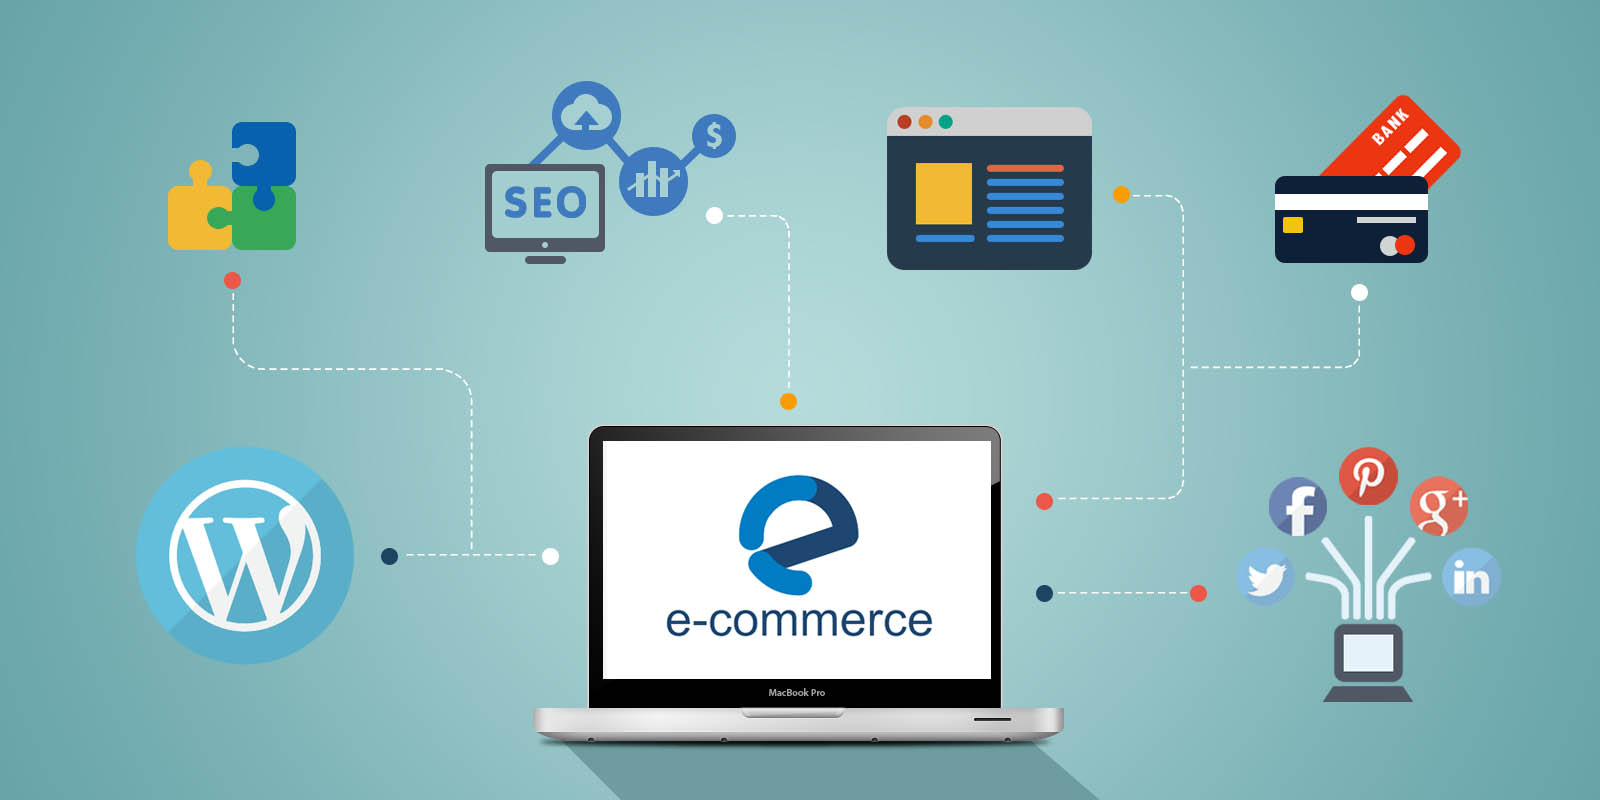 How to Set Up an E-Commerce Site